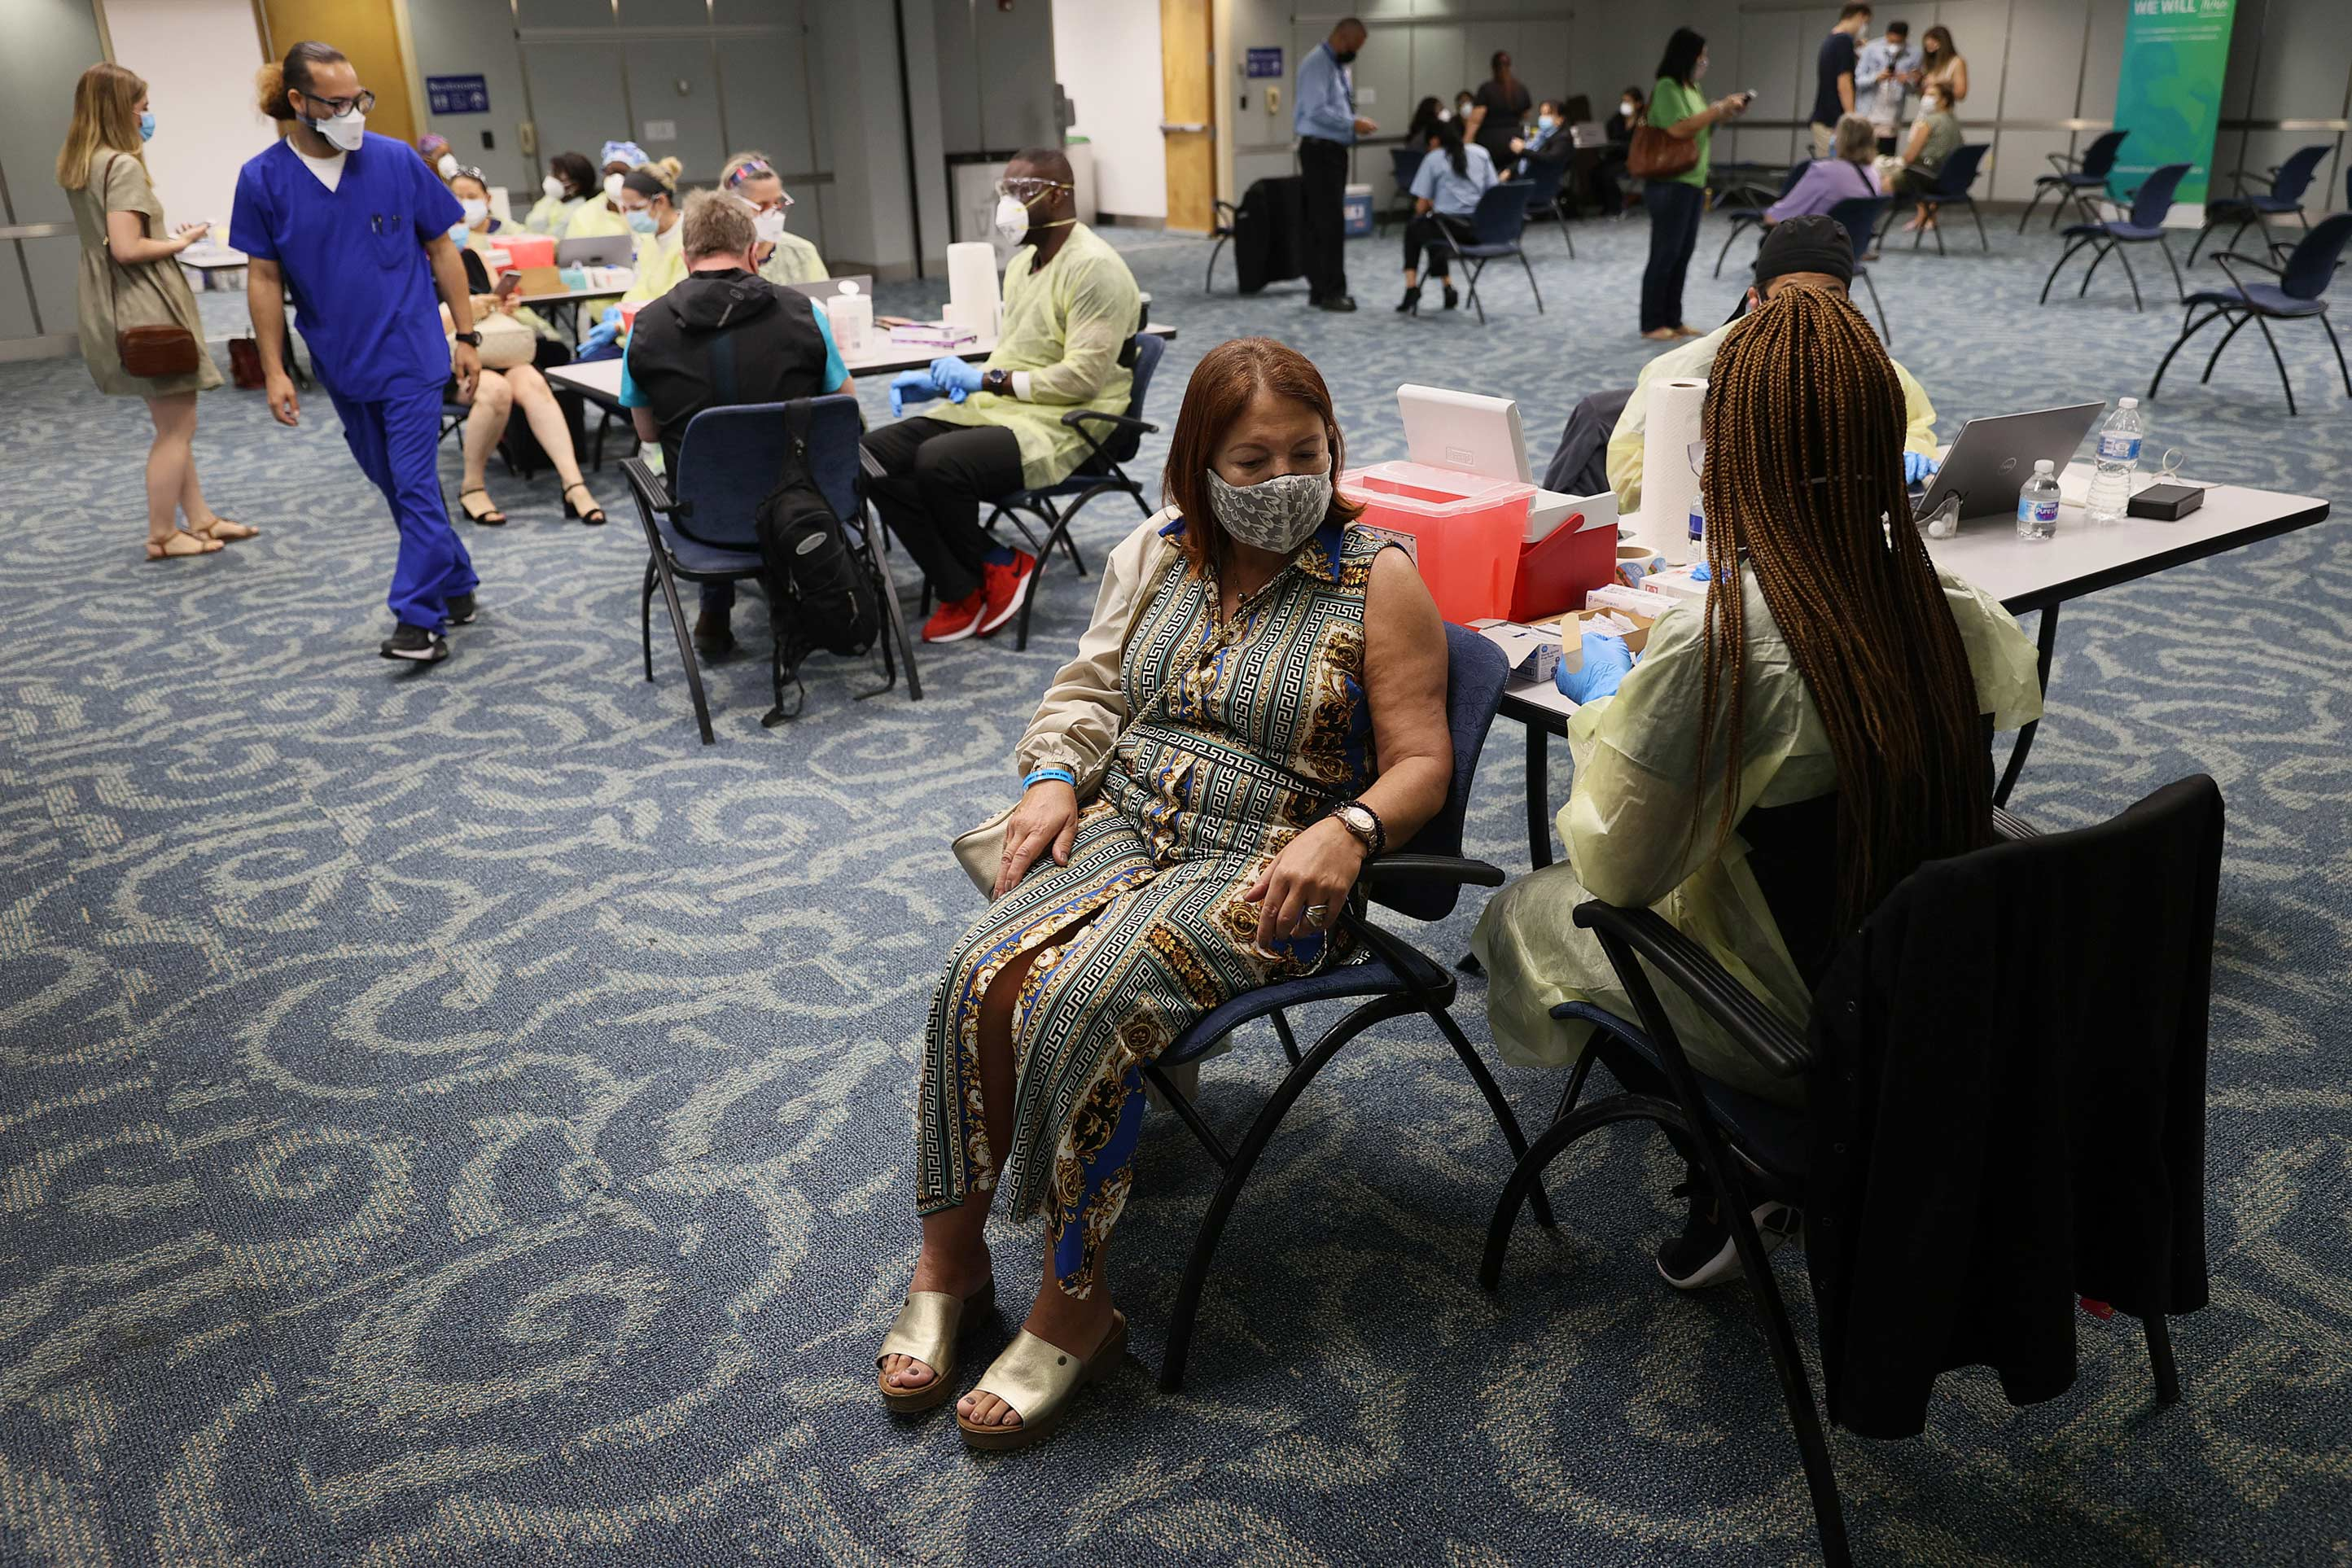 Sylvia March gets a Pfizer-BioNtech COVID-19 vaccination from a health care worker at Miami International Airport on May 10 in Miami.